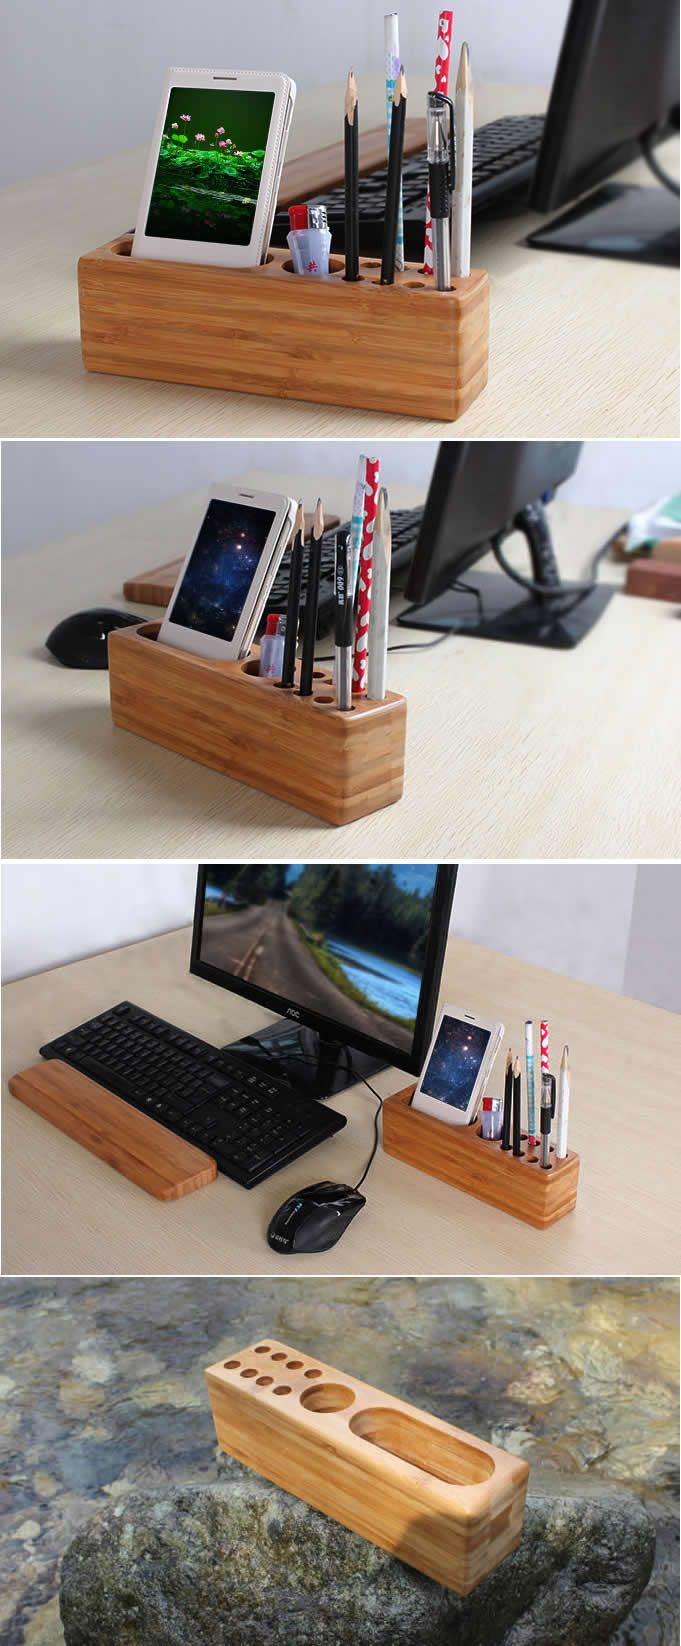 Wood Pen Pencil Holder Cell Phone Stand Wooden Desk Organizer